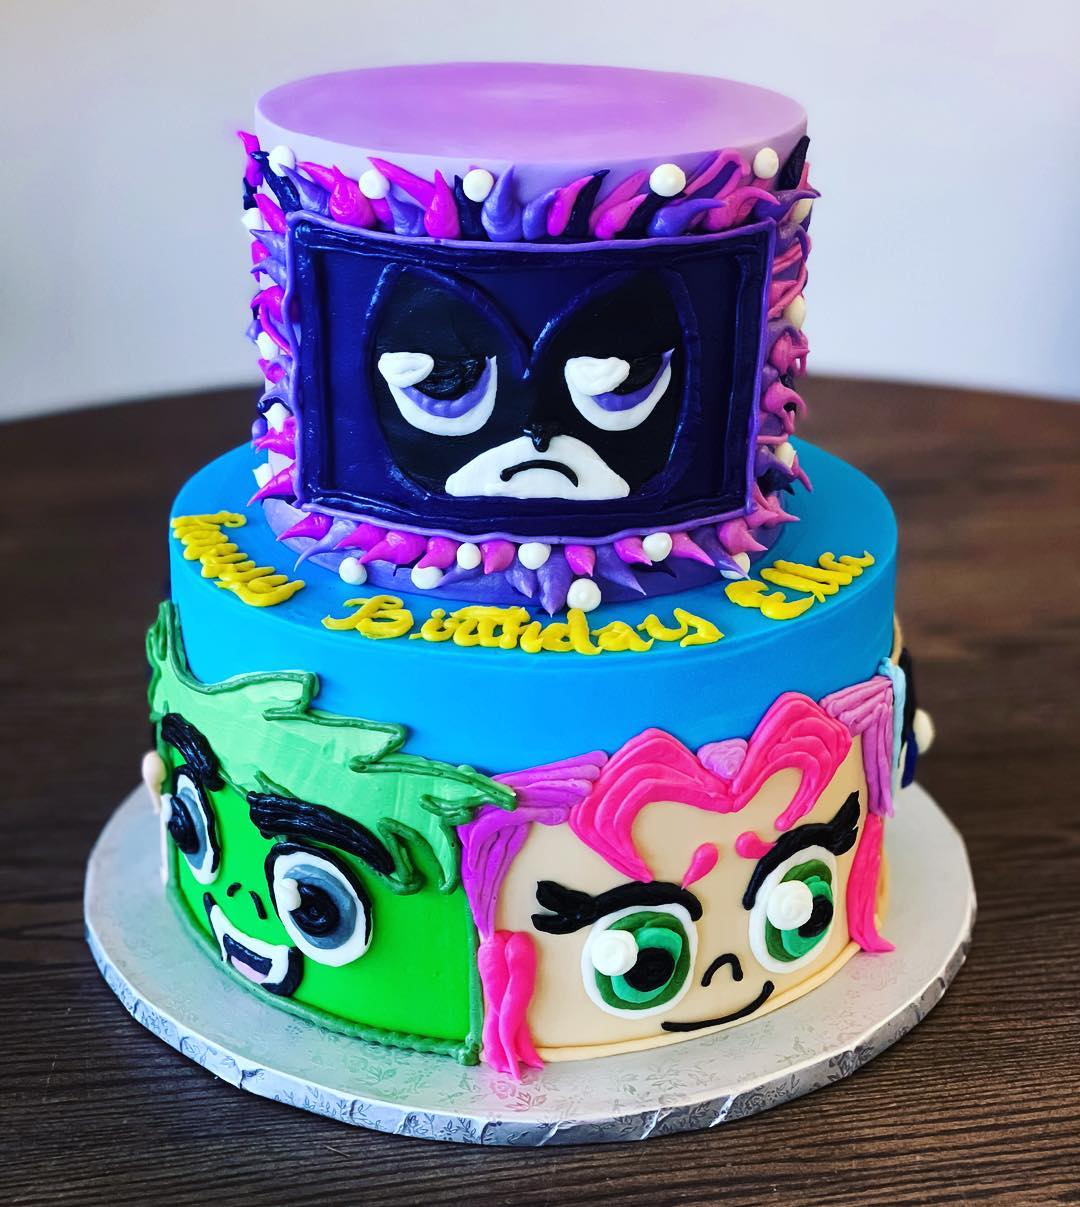 Teen Titans Cake - Hayley Cakes and CookiesHayley Cakes and Cookies